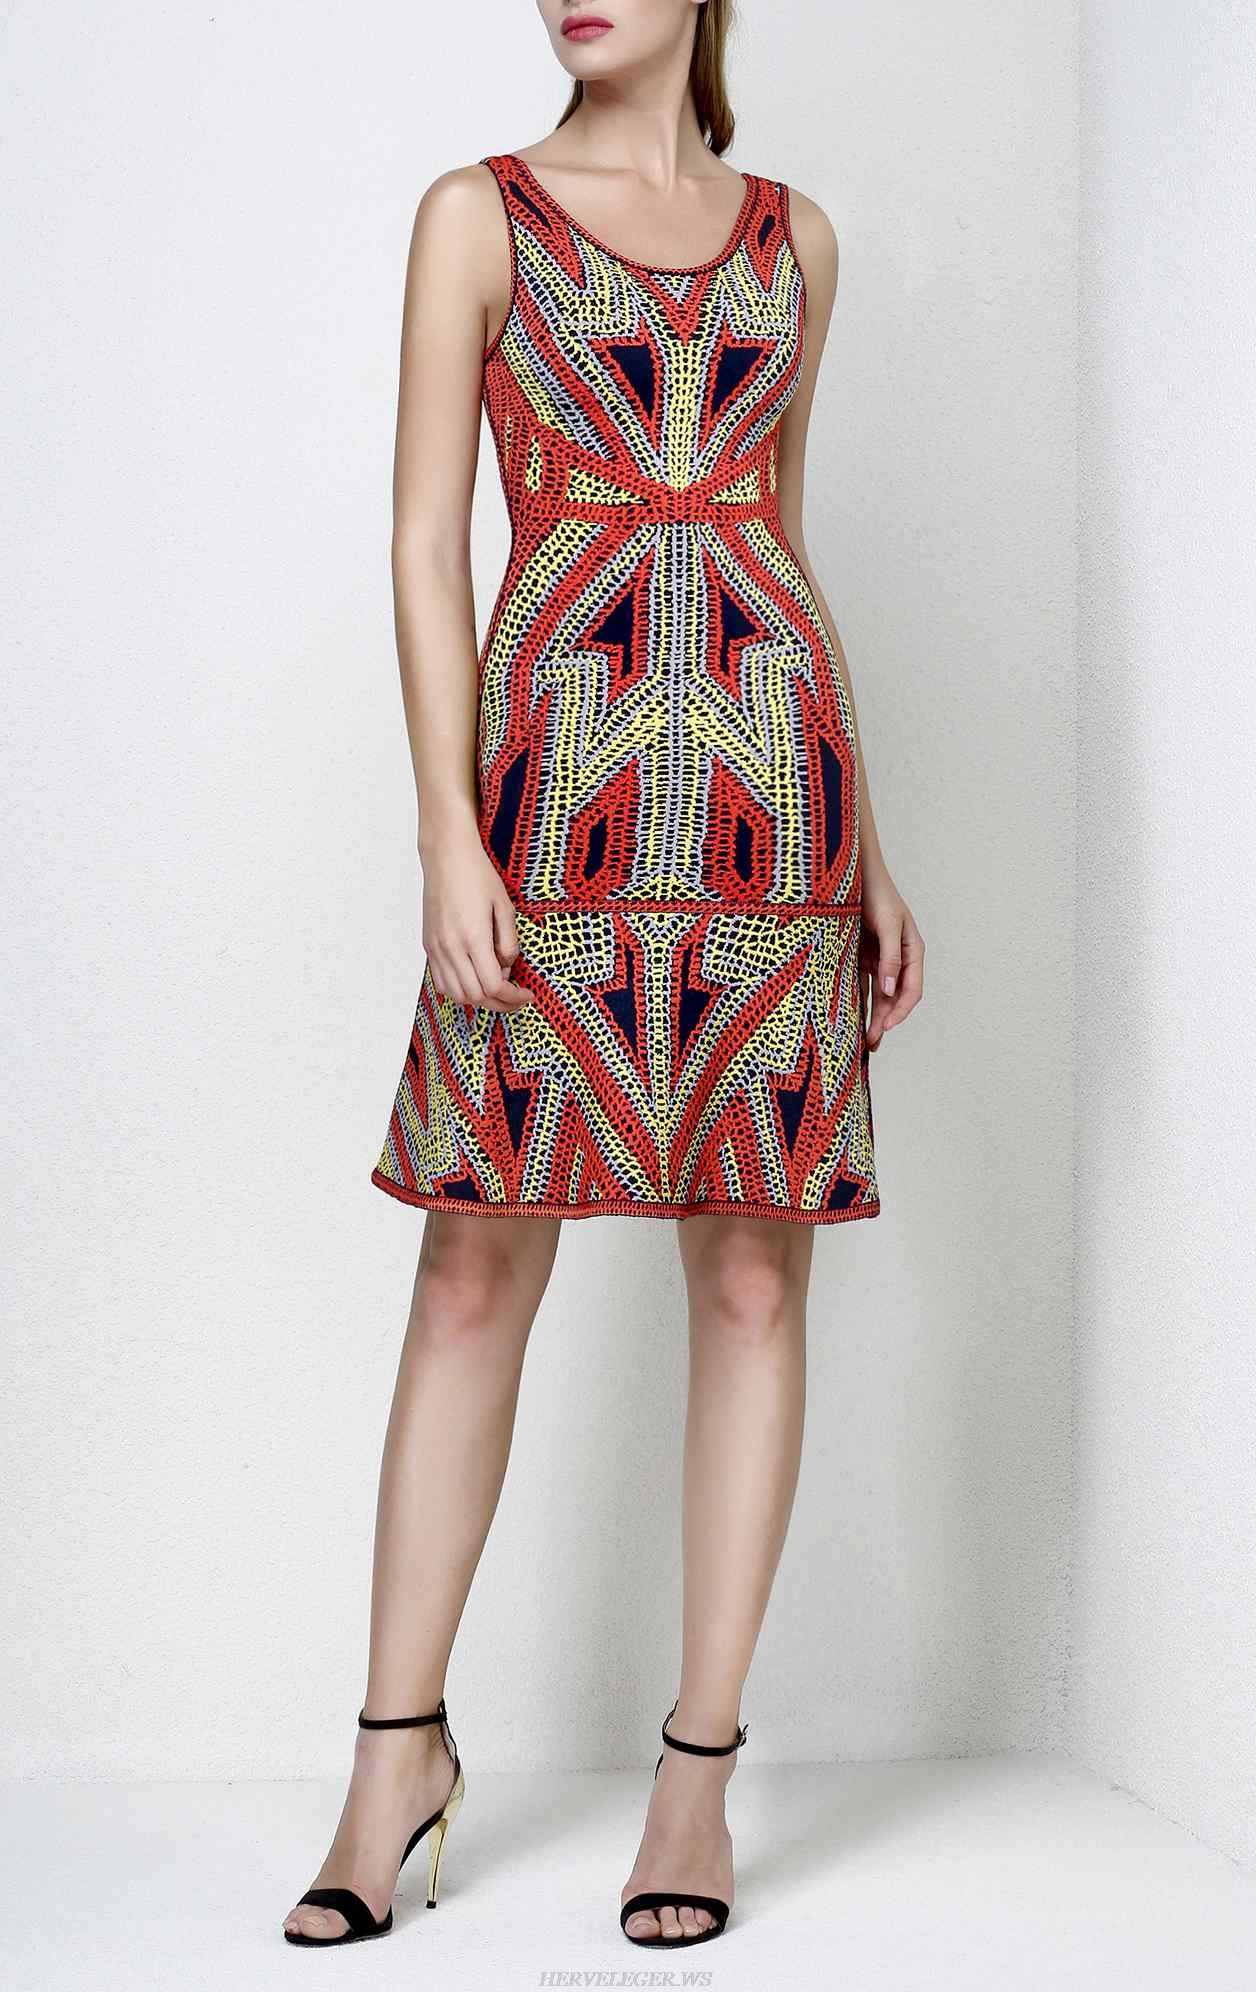 Herve Leger Danika Geometric Jacquard Flounce Dress